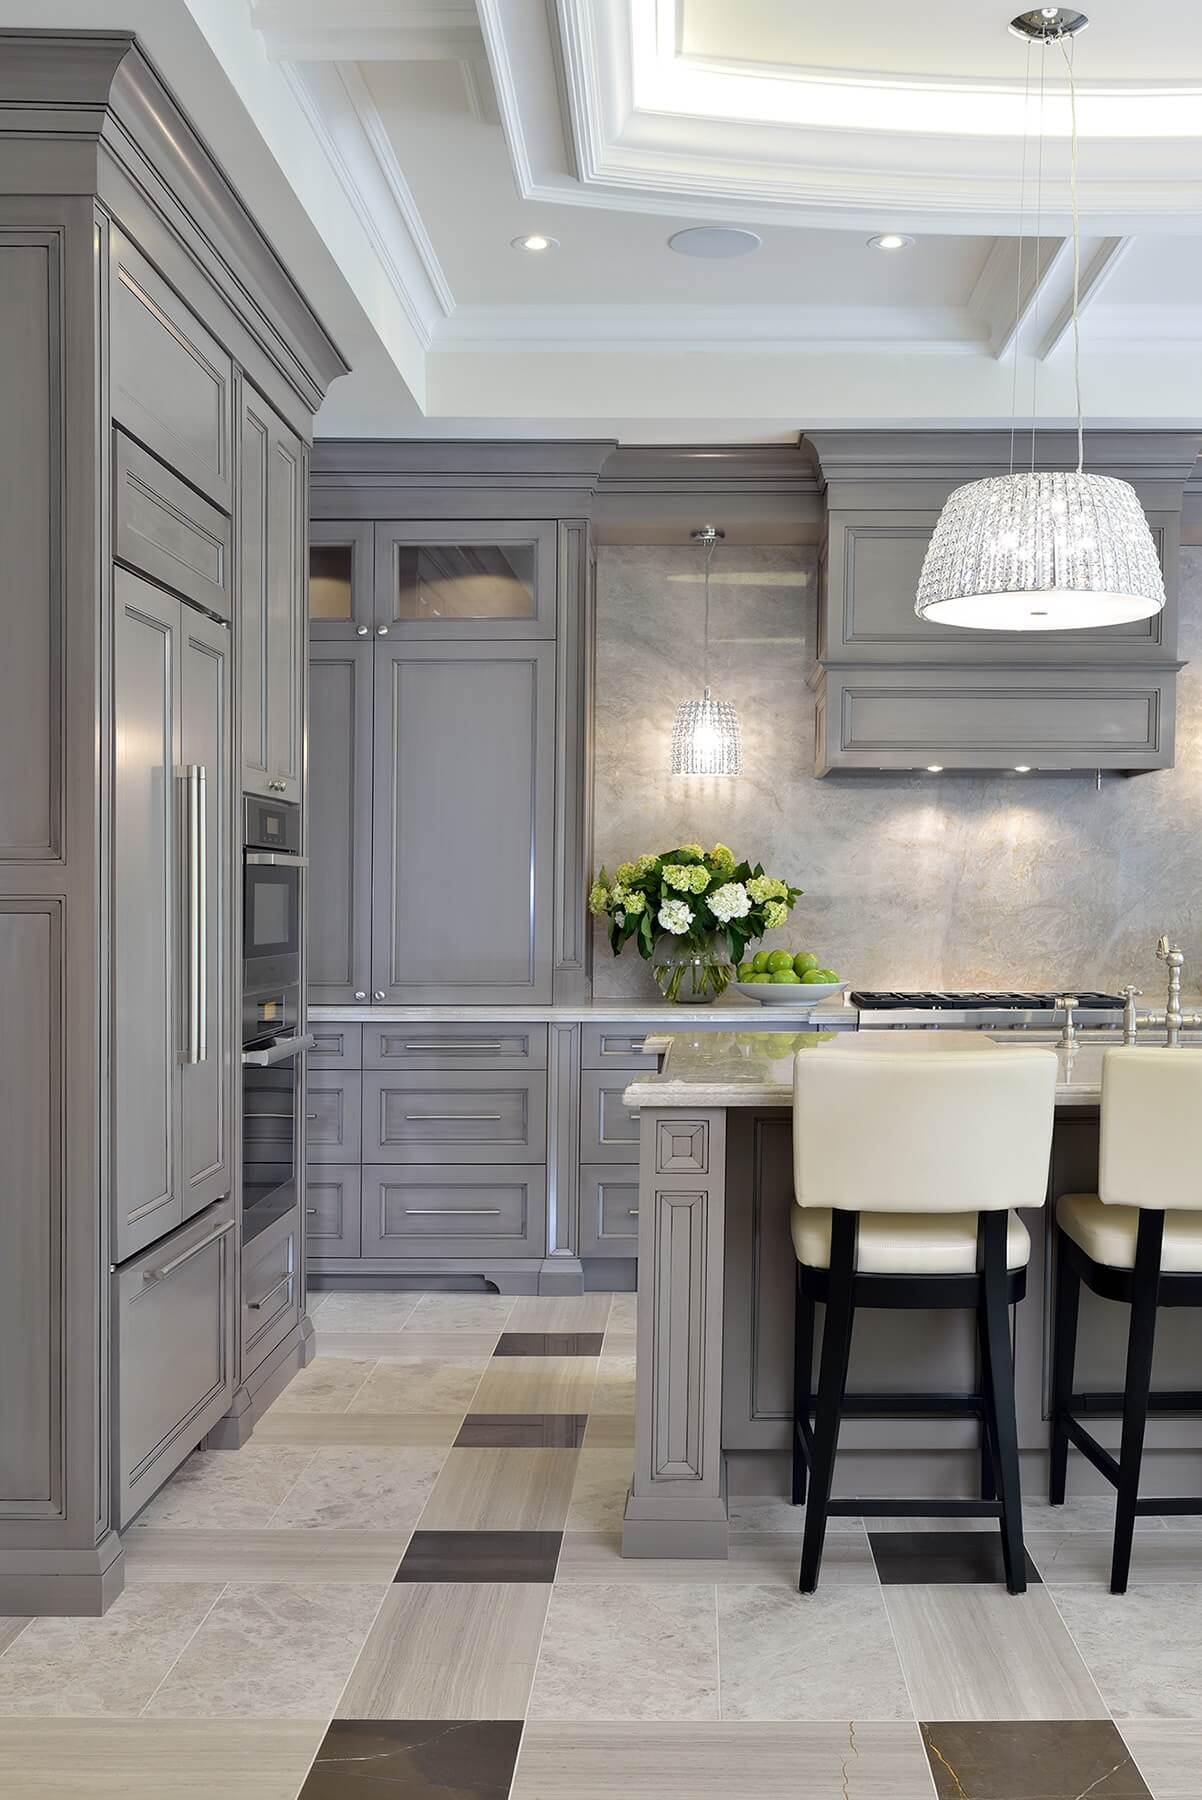 Here we have a closer look at the medley of light marble flooring, pairing sympathetically with the quartzite countertop and backsplash. Black frame, cream leather bar stools match the overall tone.